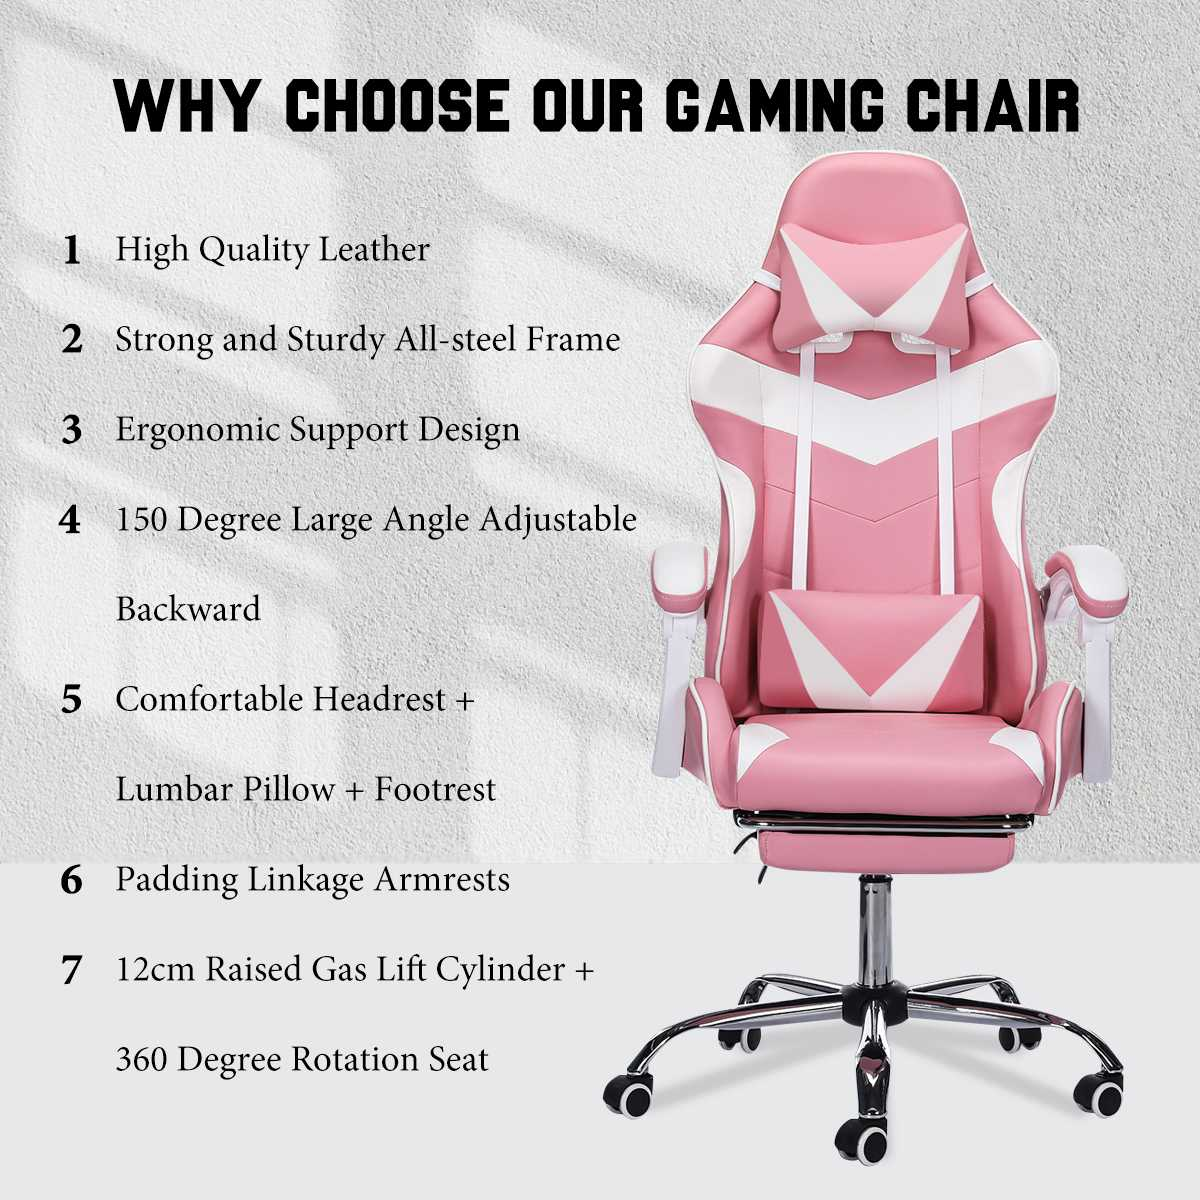 Hd38f62e3ab2c41e2a683e9ae248797c79 - Office Computer Chair WCG Gaming Chair Pink Silla Leather Desk Chair Internet Cafe Gamer Chair Household Armchair Office Chair